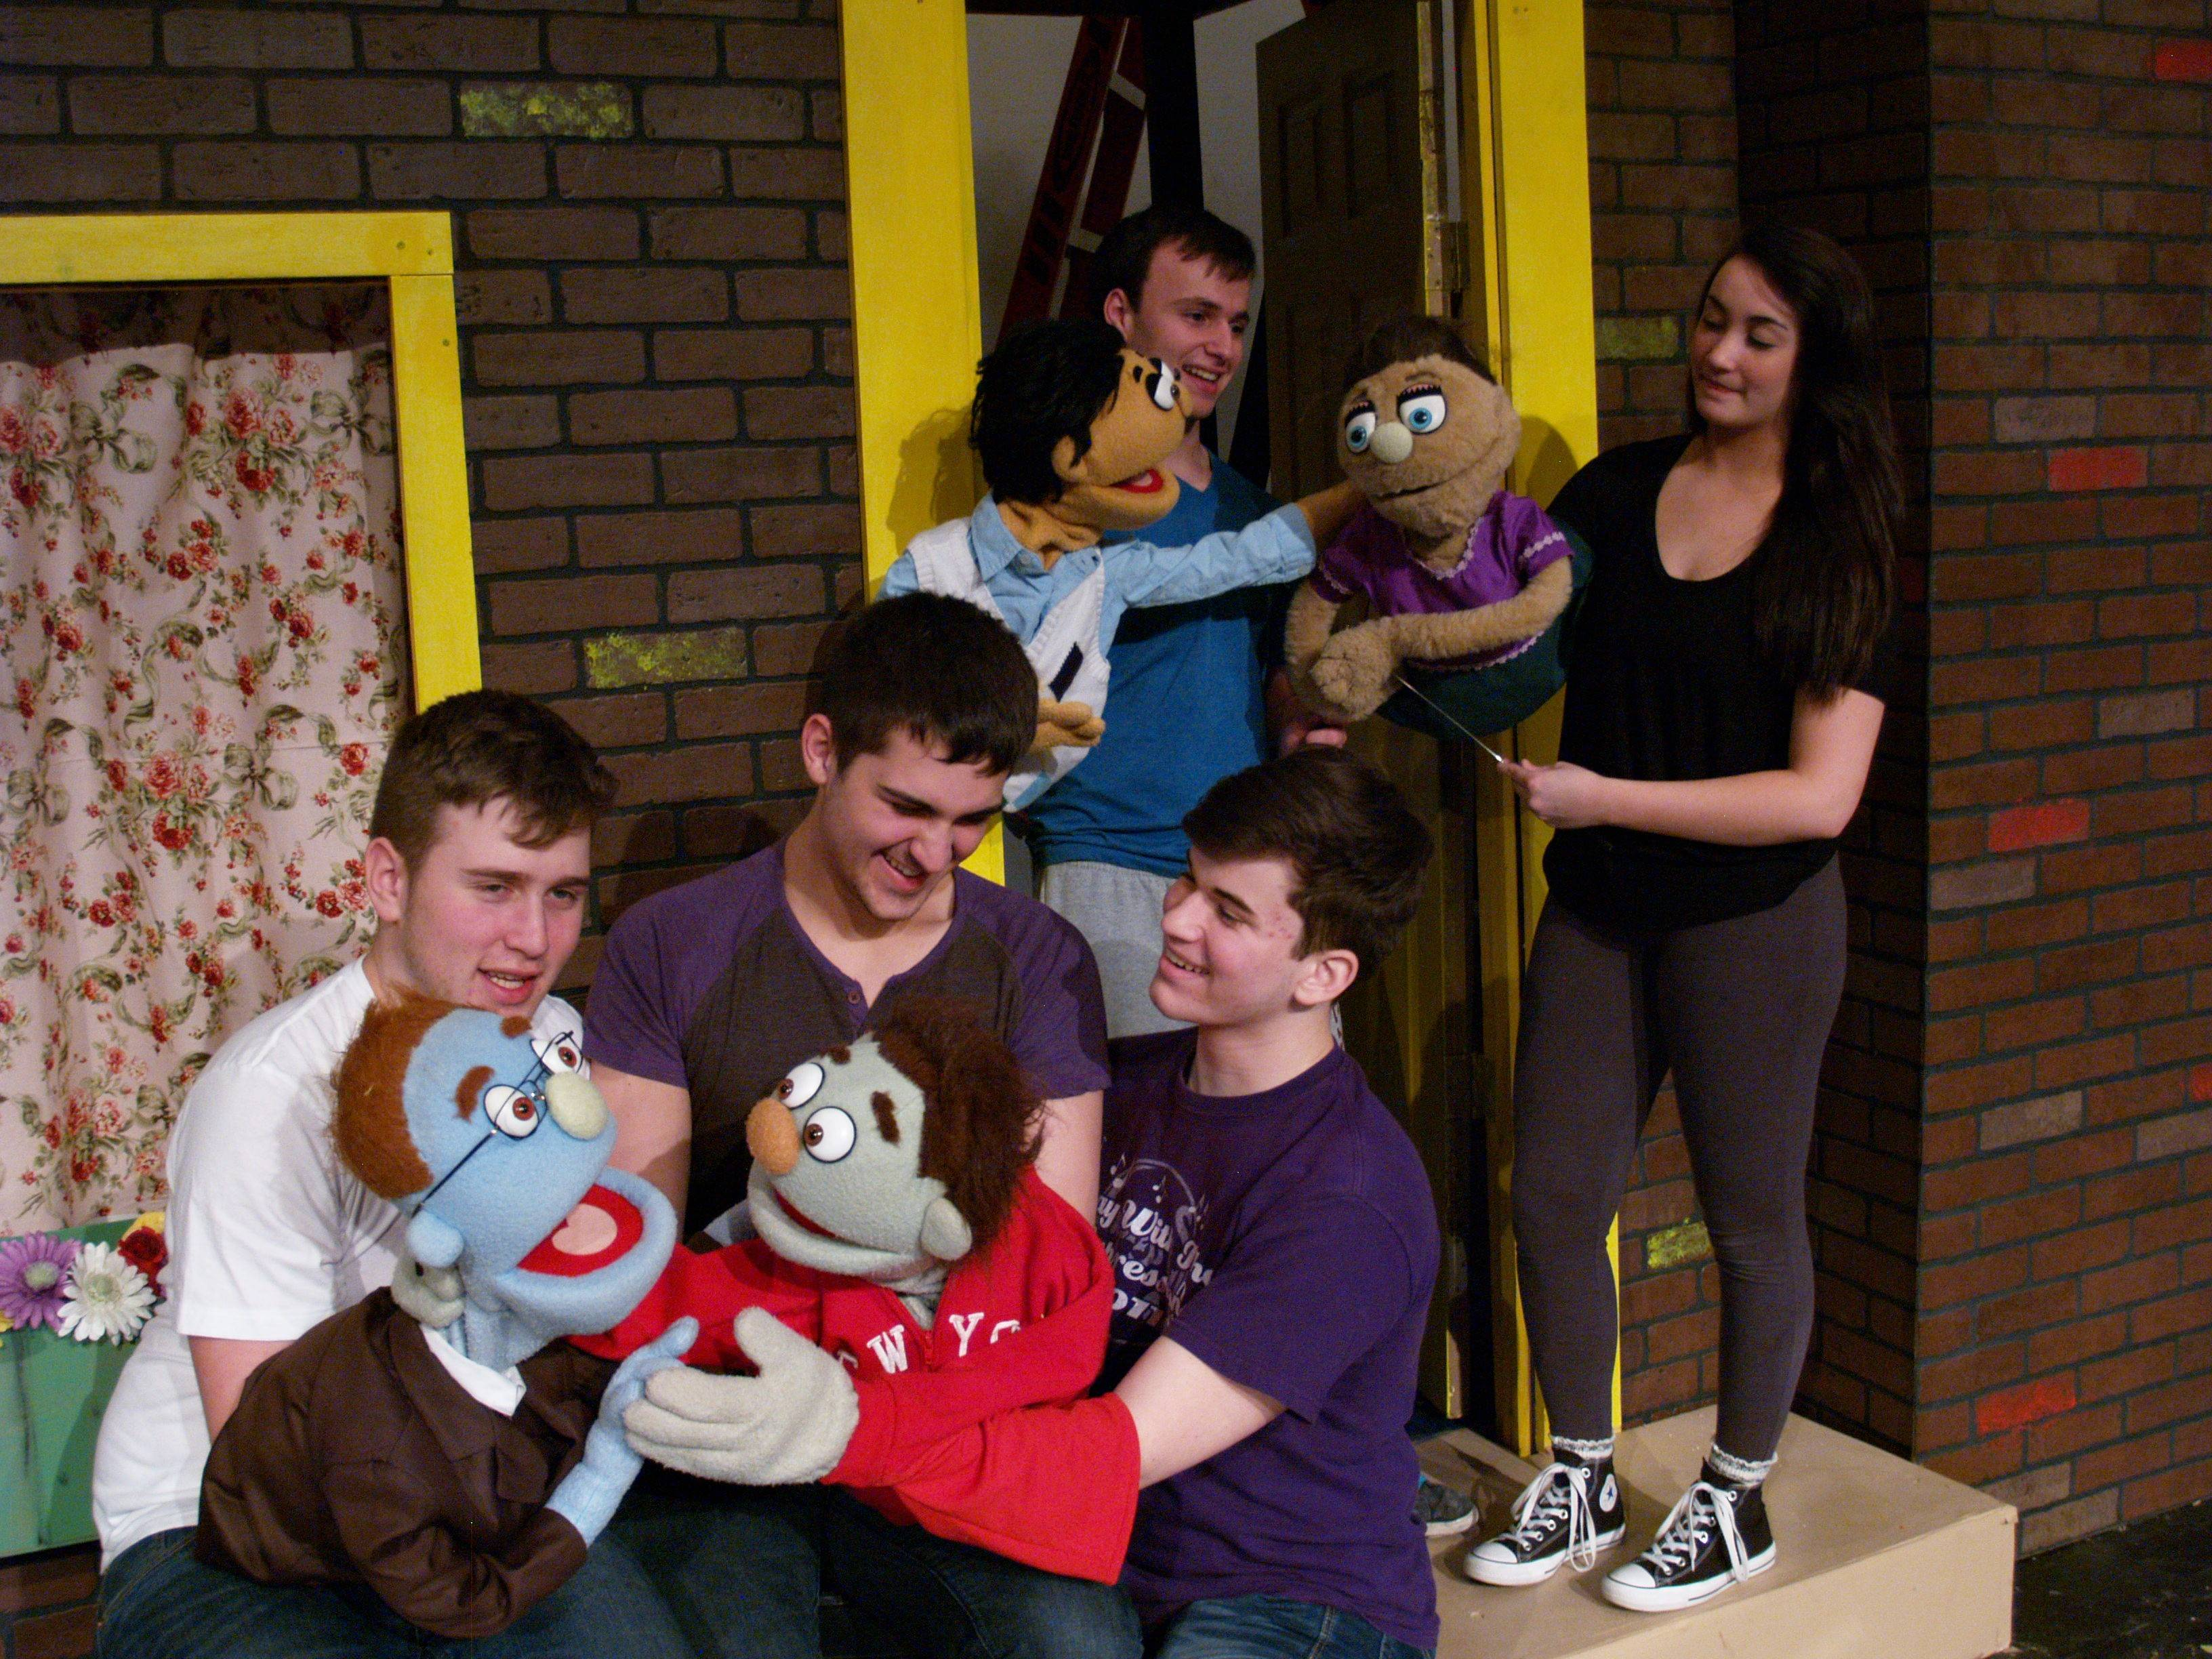 Cast #1 includes Jeremy Hamburger (with Rod the Puppet), Milan Babic and Andrew Kapinos (with Nicky puppet), Cole Festenstein (with Princeton puppet), and Paige Alvarado (with Kate Monster puppet).